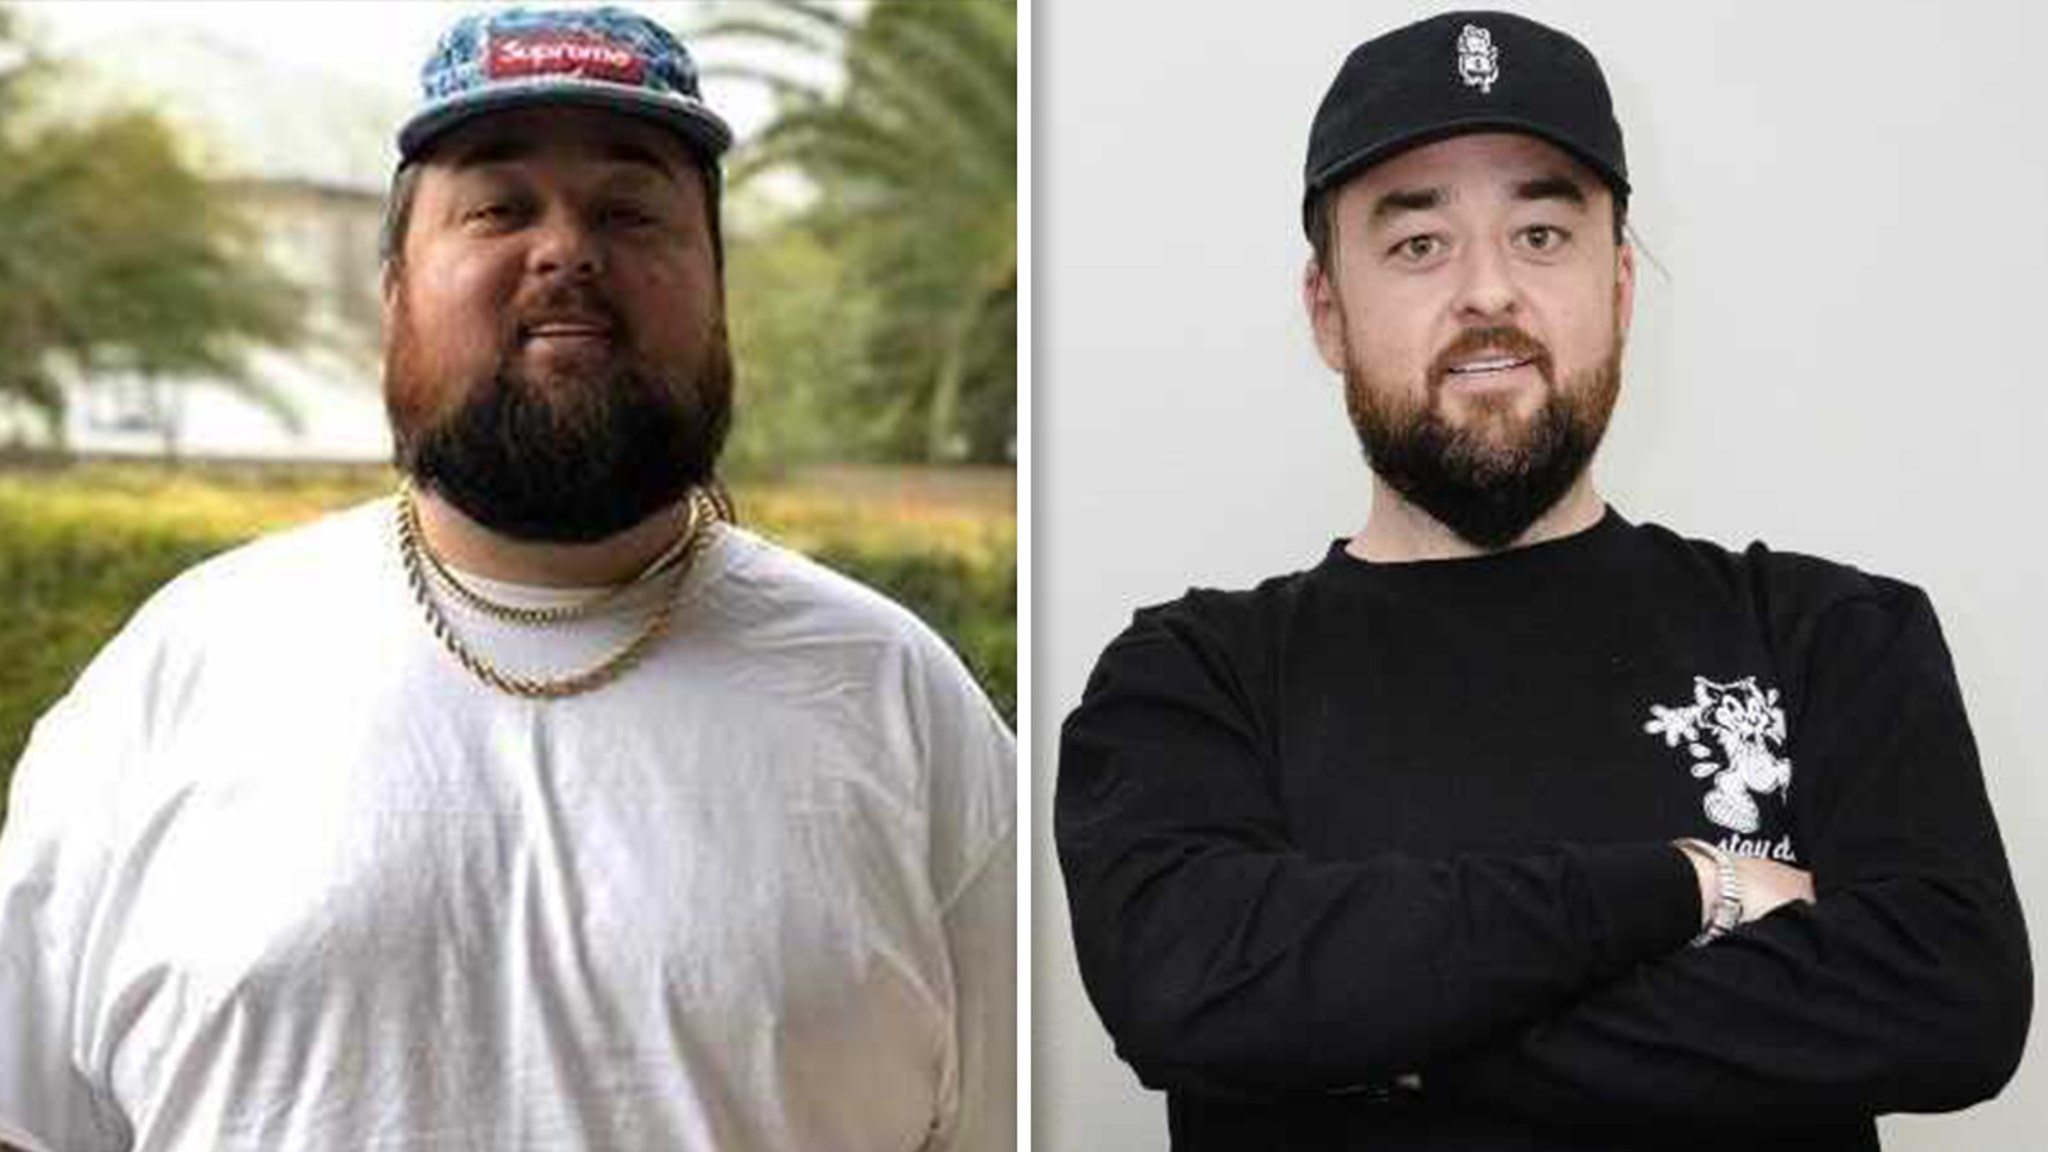 Chumlee from 'Pawn Stars' Has Lost 160 Pounds After Gastric Sleeve Surgery